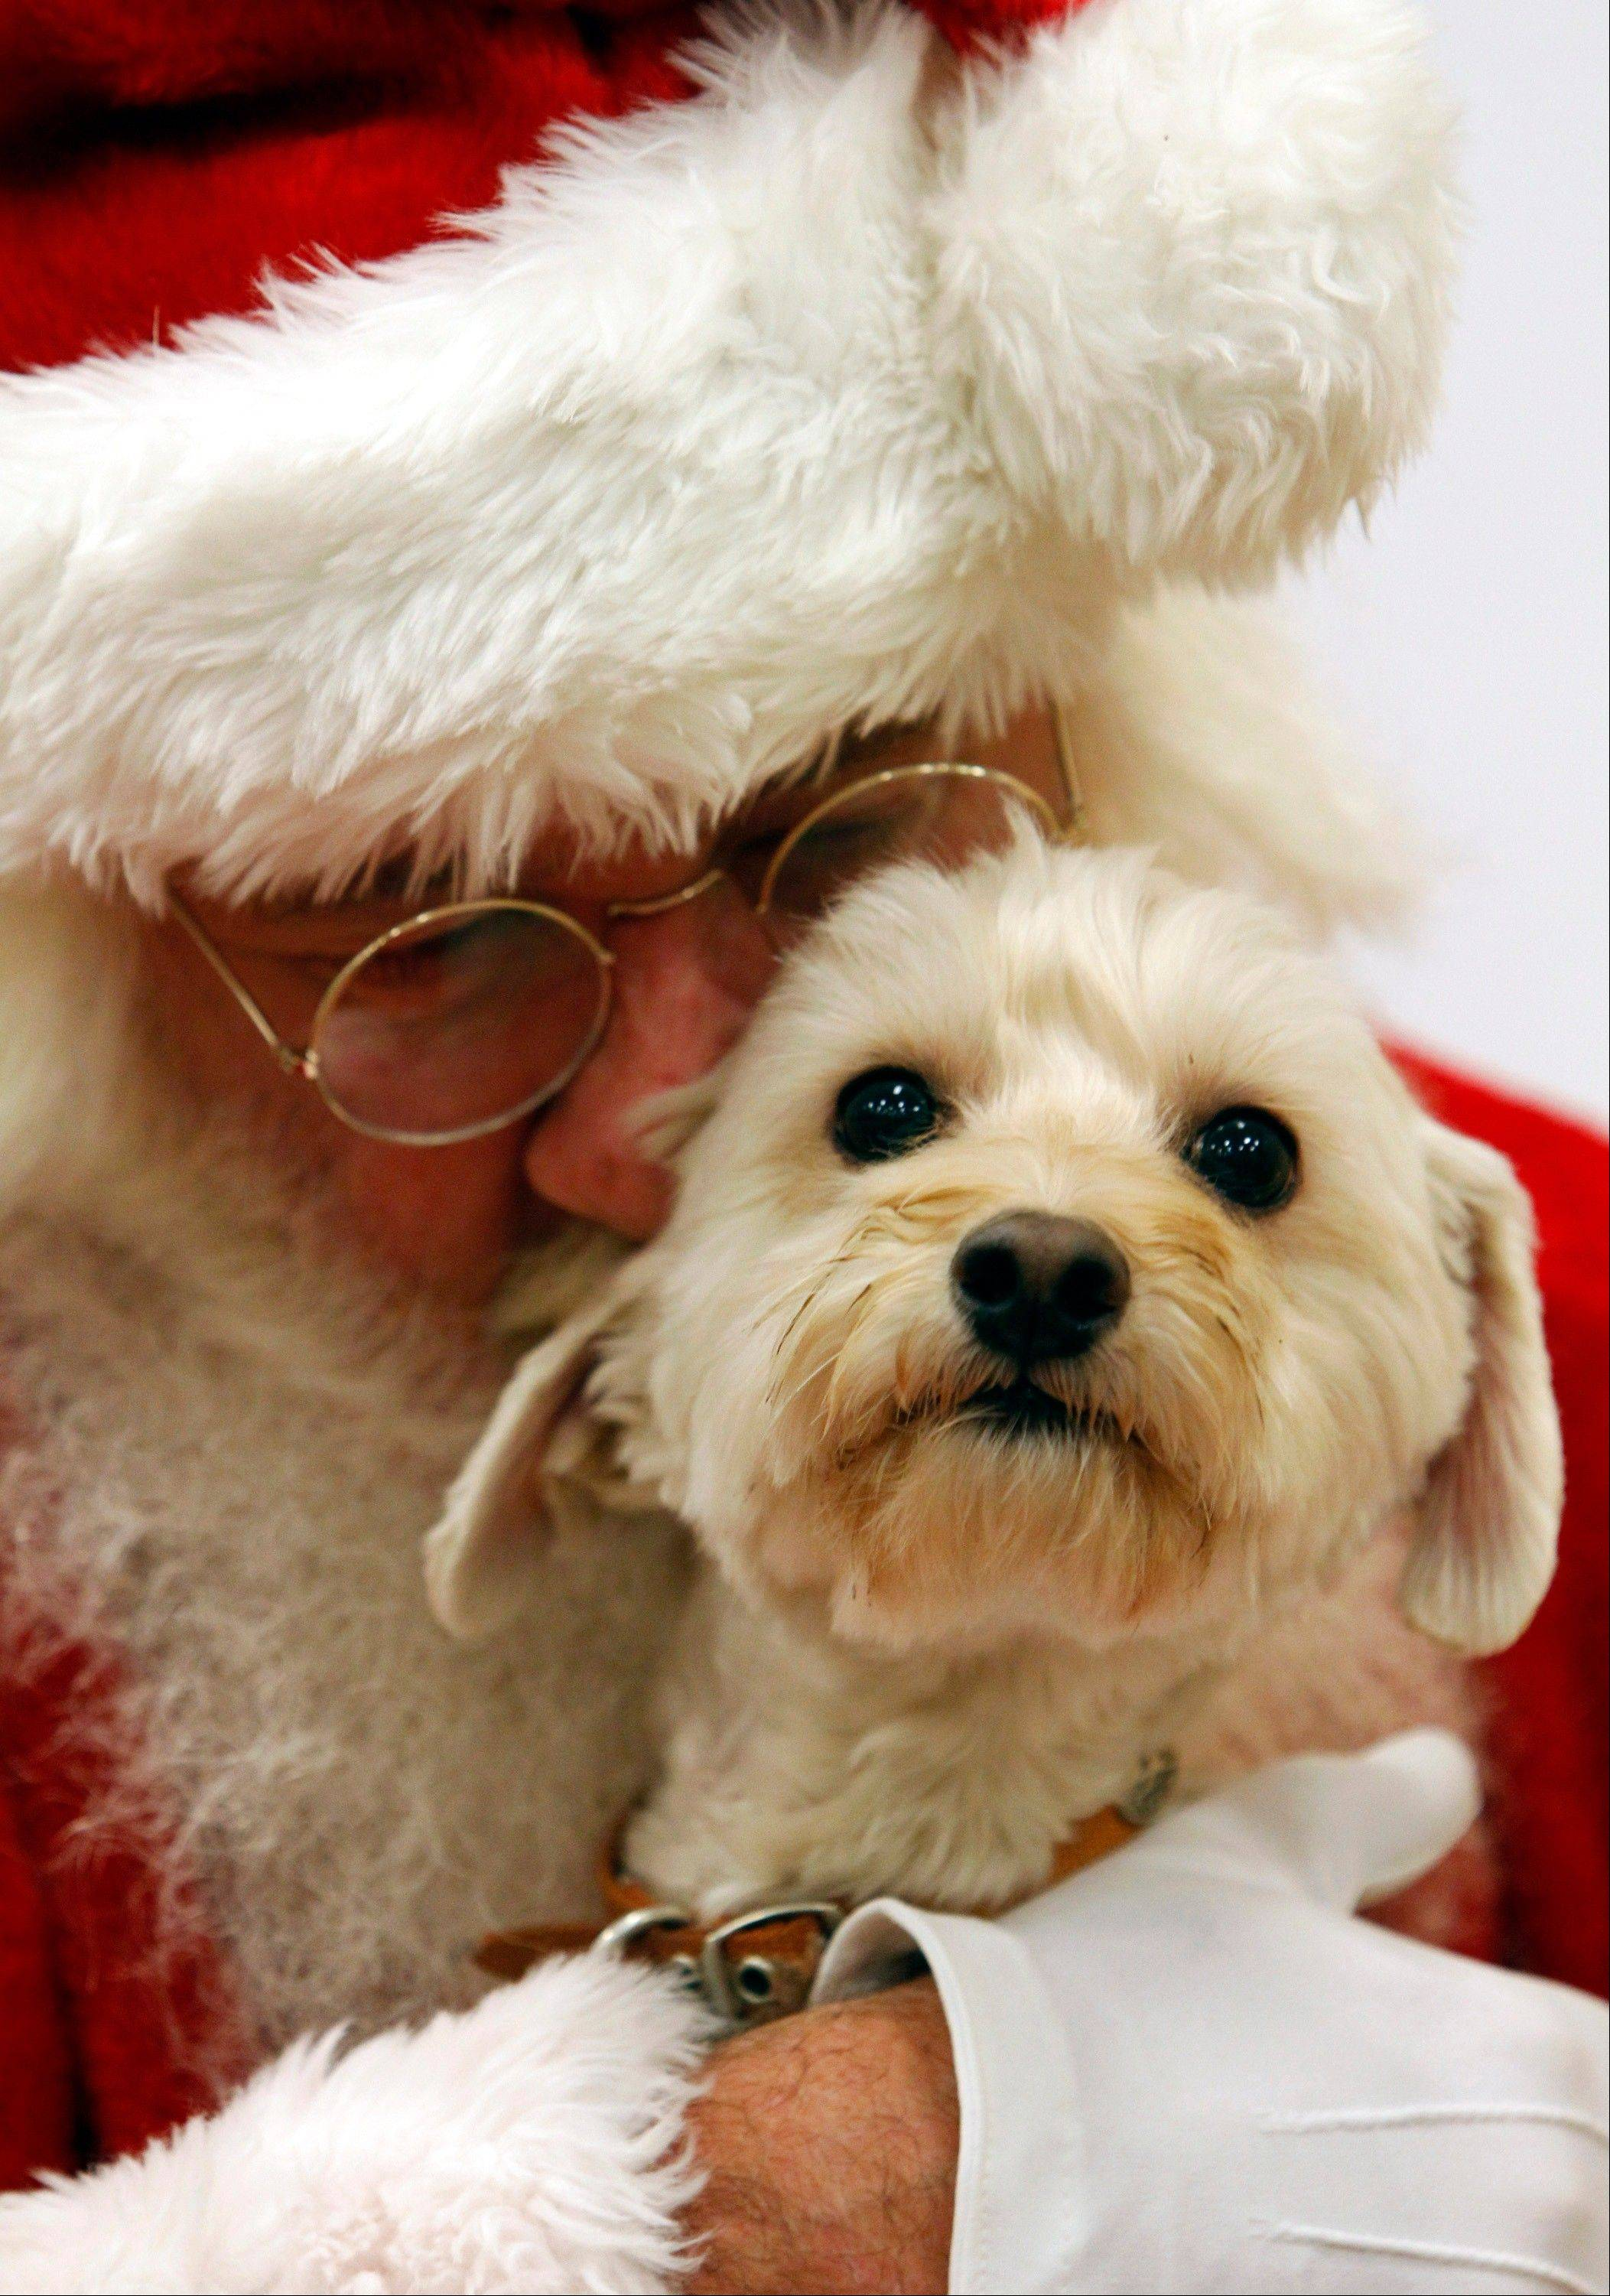 Bentley held by Santa Claus for a photo at the PetSmart Santa Claws photo event in Fort Worth, Texas. A holiday present for Fido or Fluffy used to be an extra table scrap or a new squeeze toy. But as with gifts for their human counterparts, pet presents are becoming increasingly high-tech.